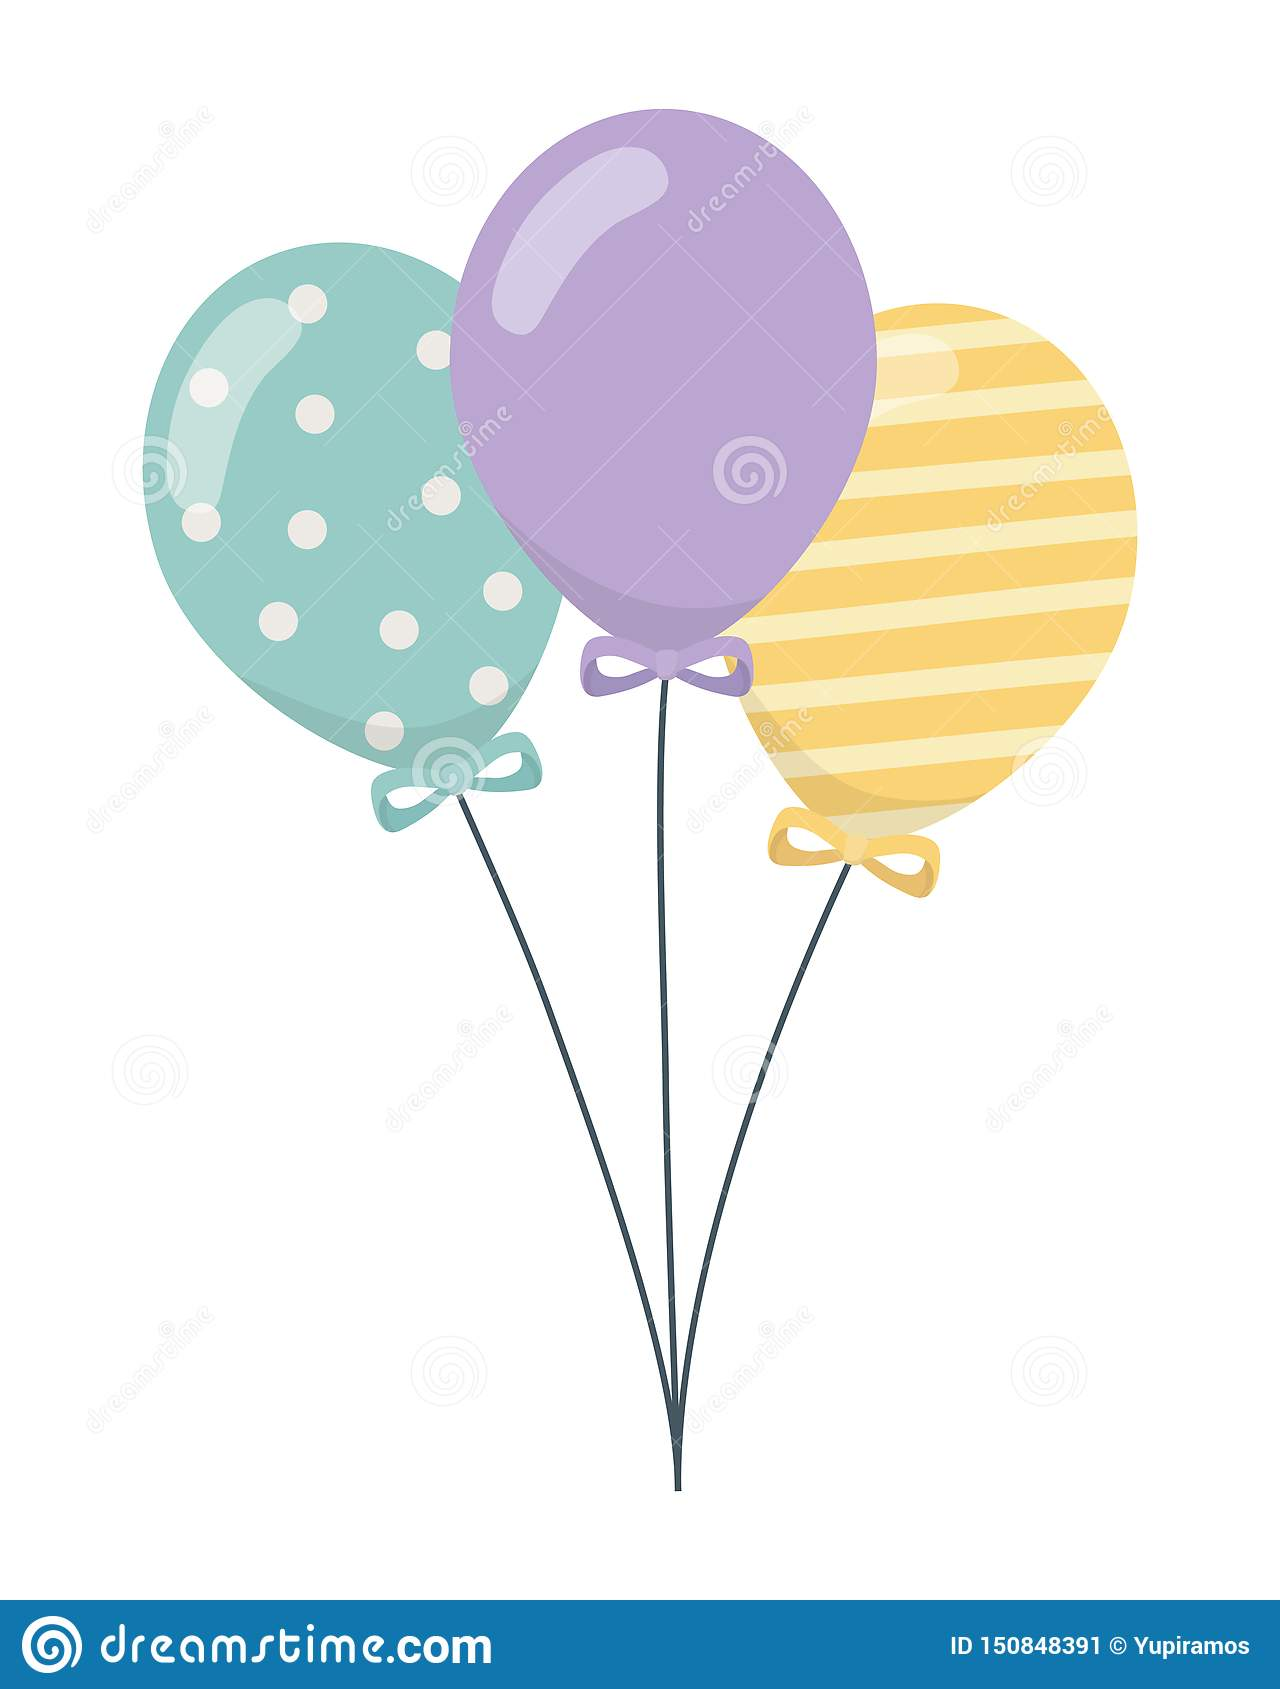 Isolated balloons for decoration design